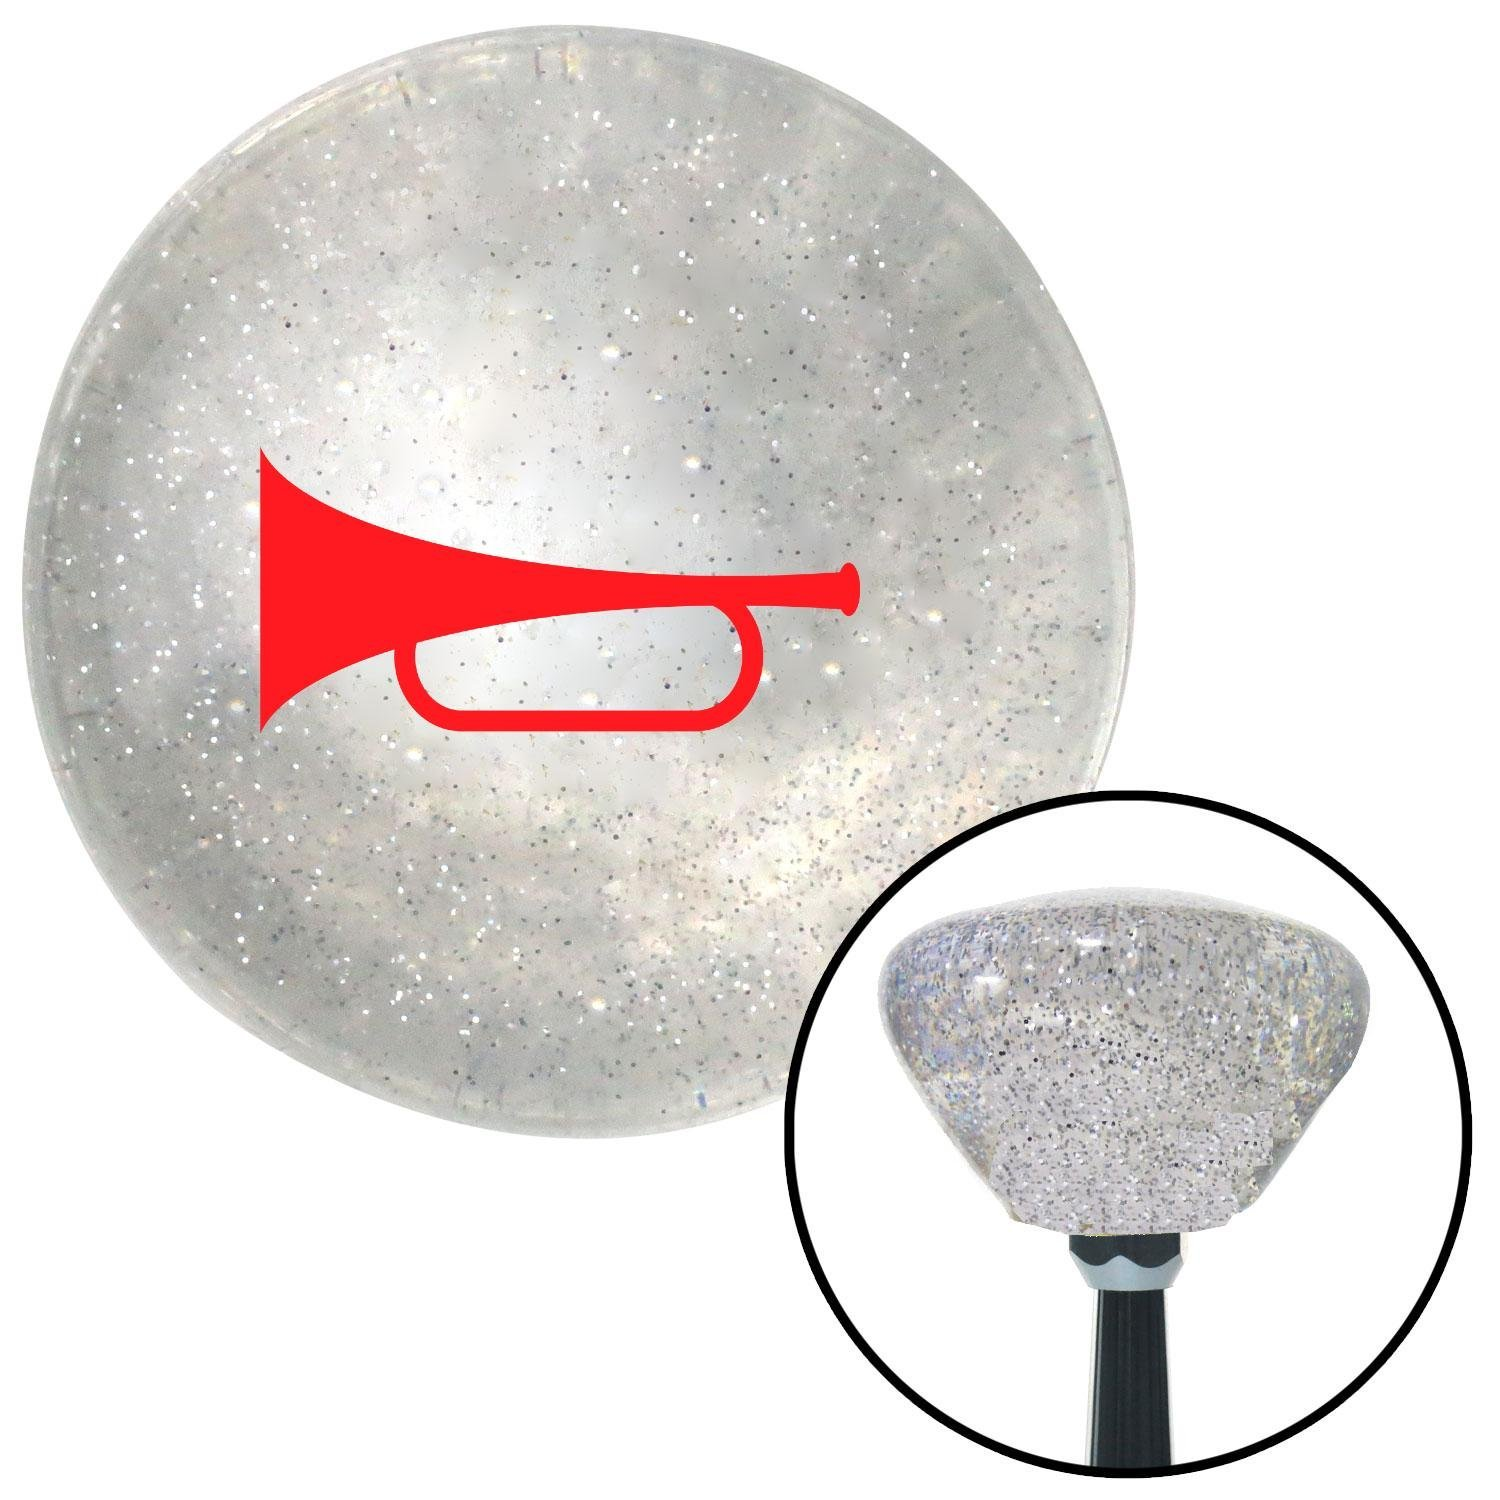 American Shifter 161913 Clear Retro Metal Flake Shift Knob with M16 x 1.5 Insert Red Horn